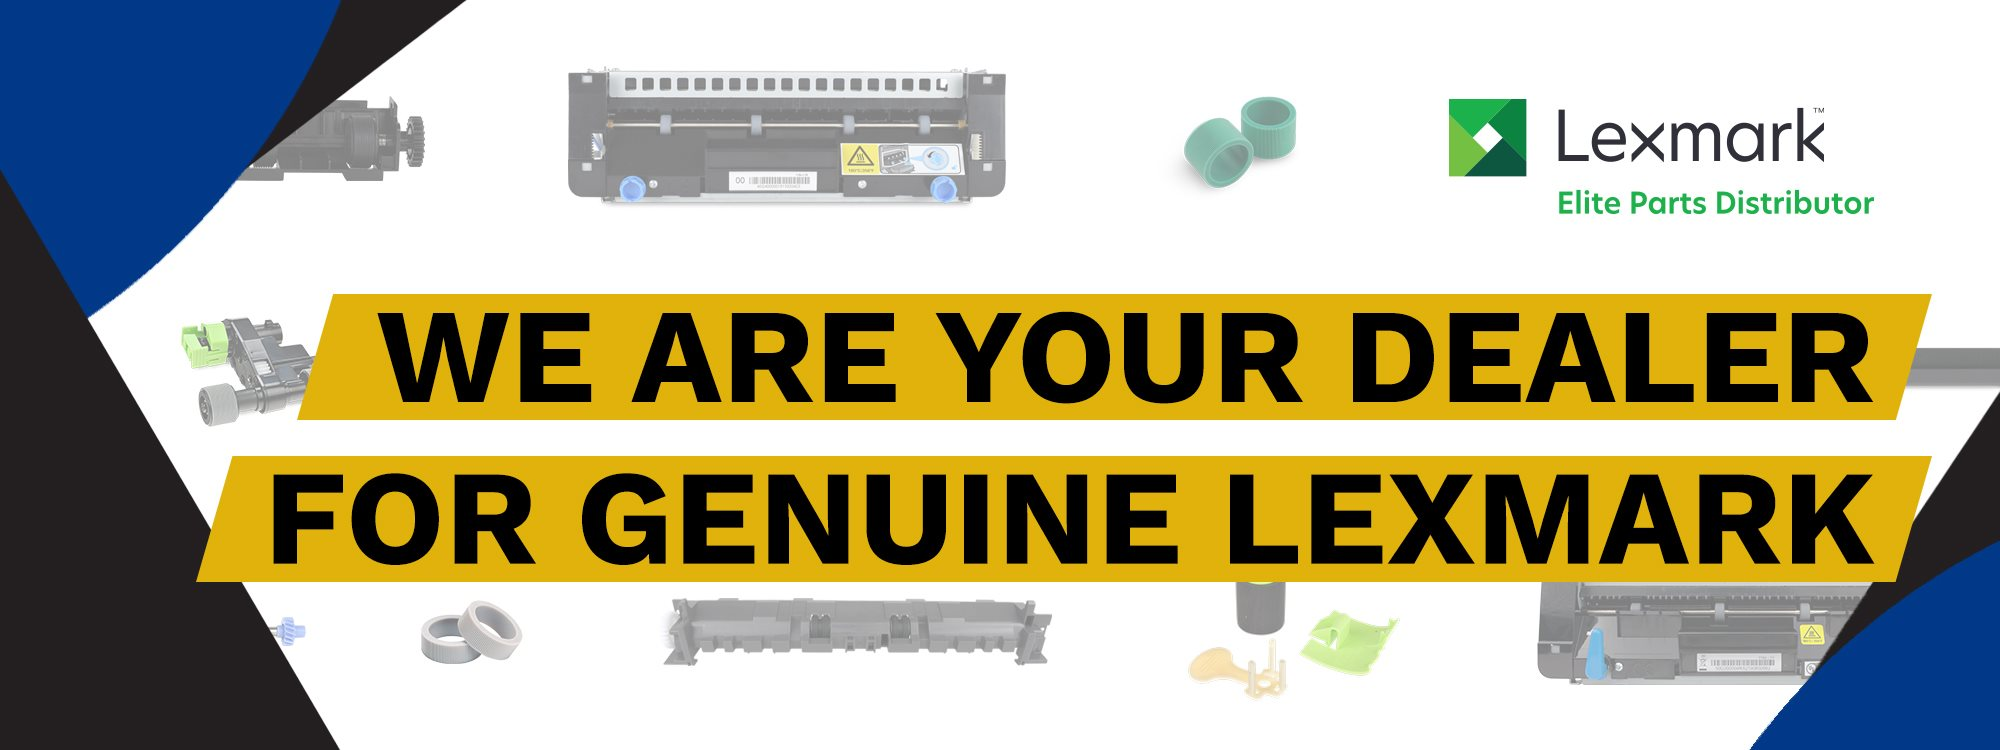 We are your dealer for Genuine Lexmark